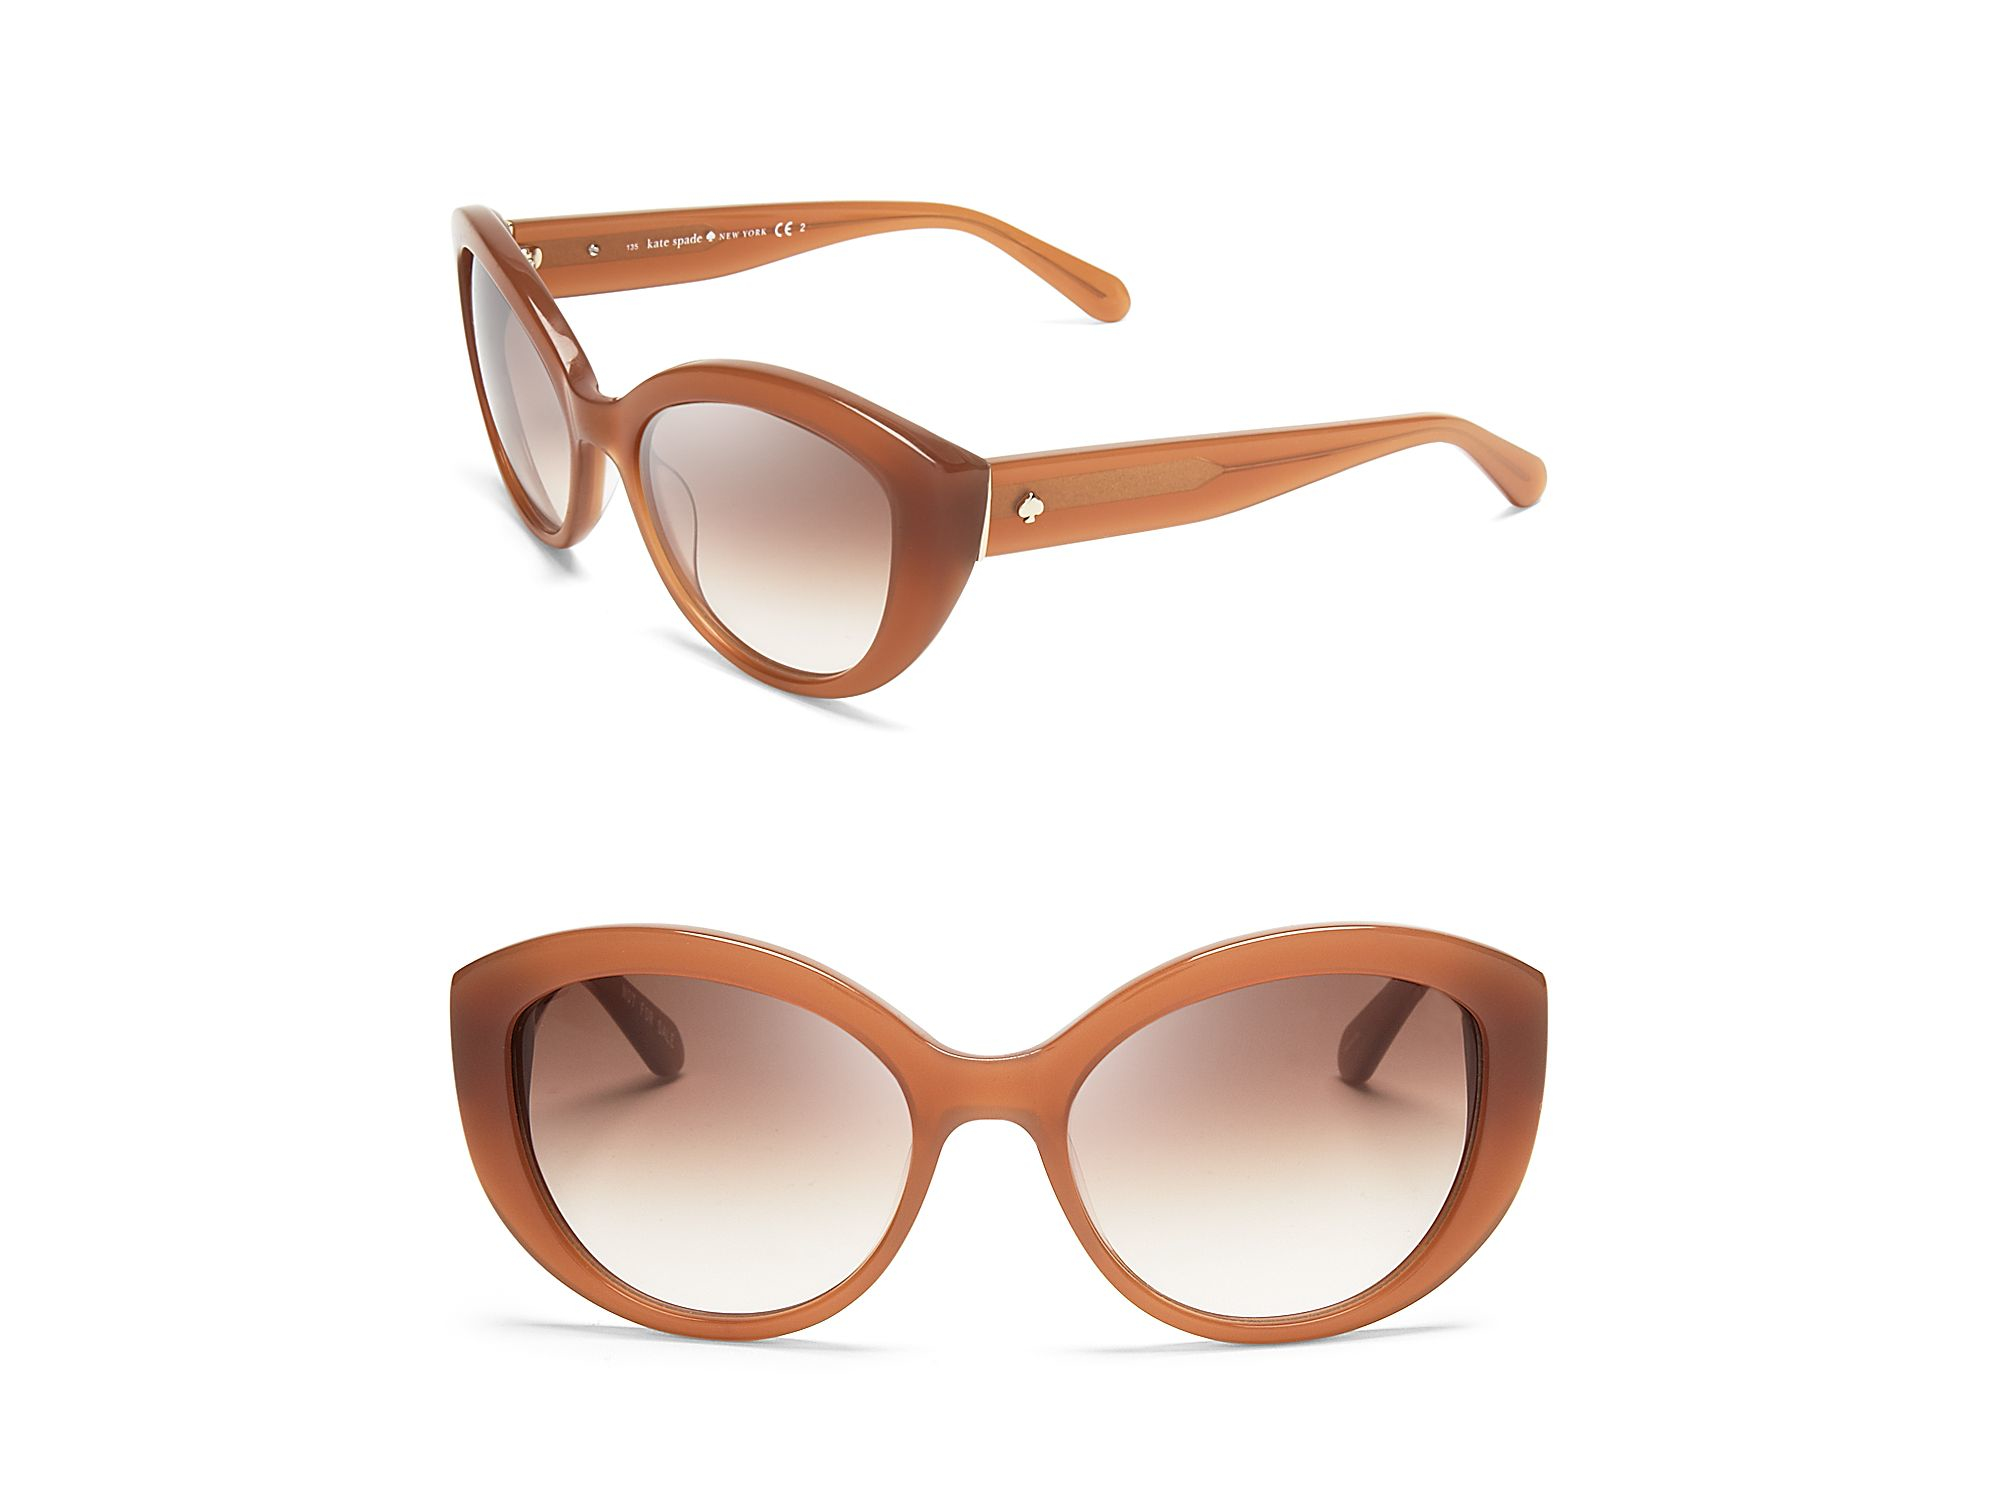 121eed5c7a4e Gallery. Previously sold at: Bloomingdale's · Women's Cat Eye Sunglasses ...